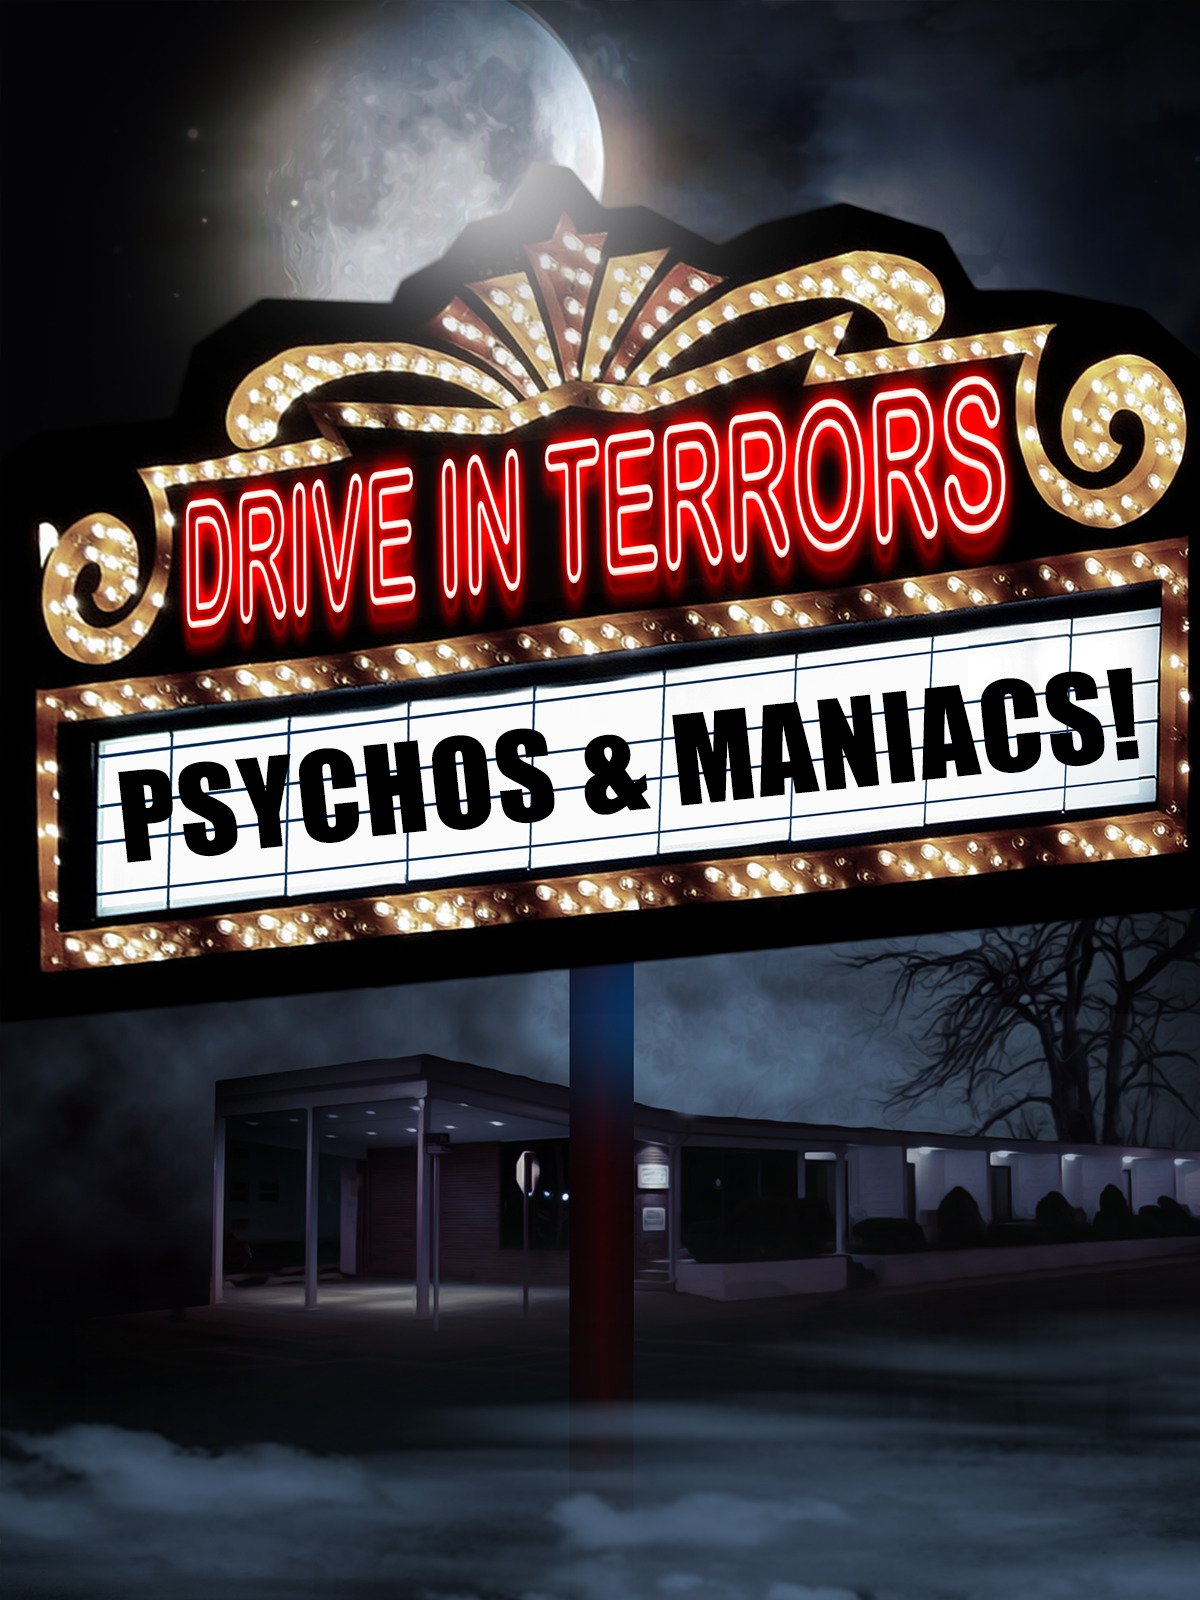 Drive-in Terrors: Psychos & Maniacs!